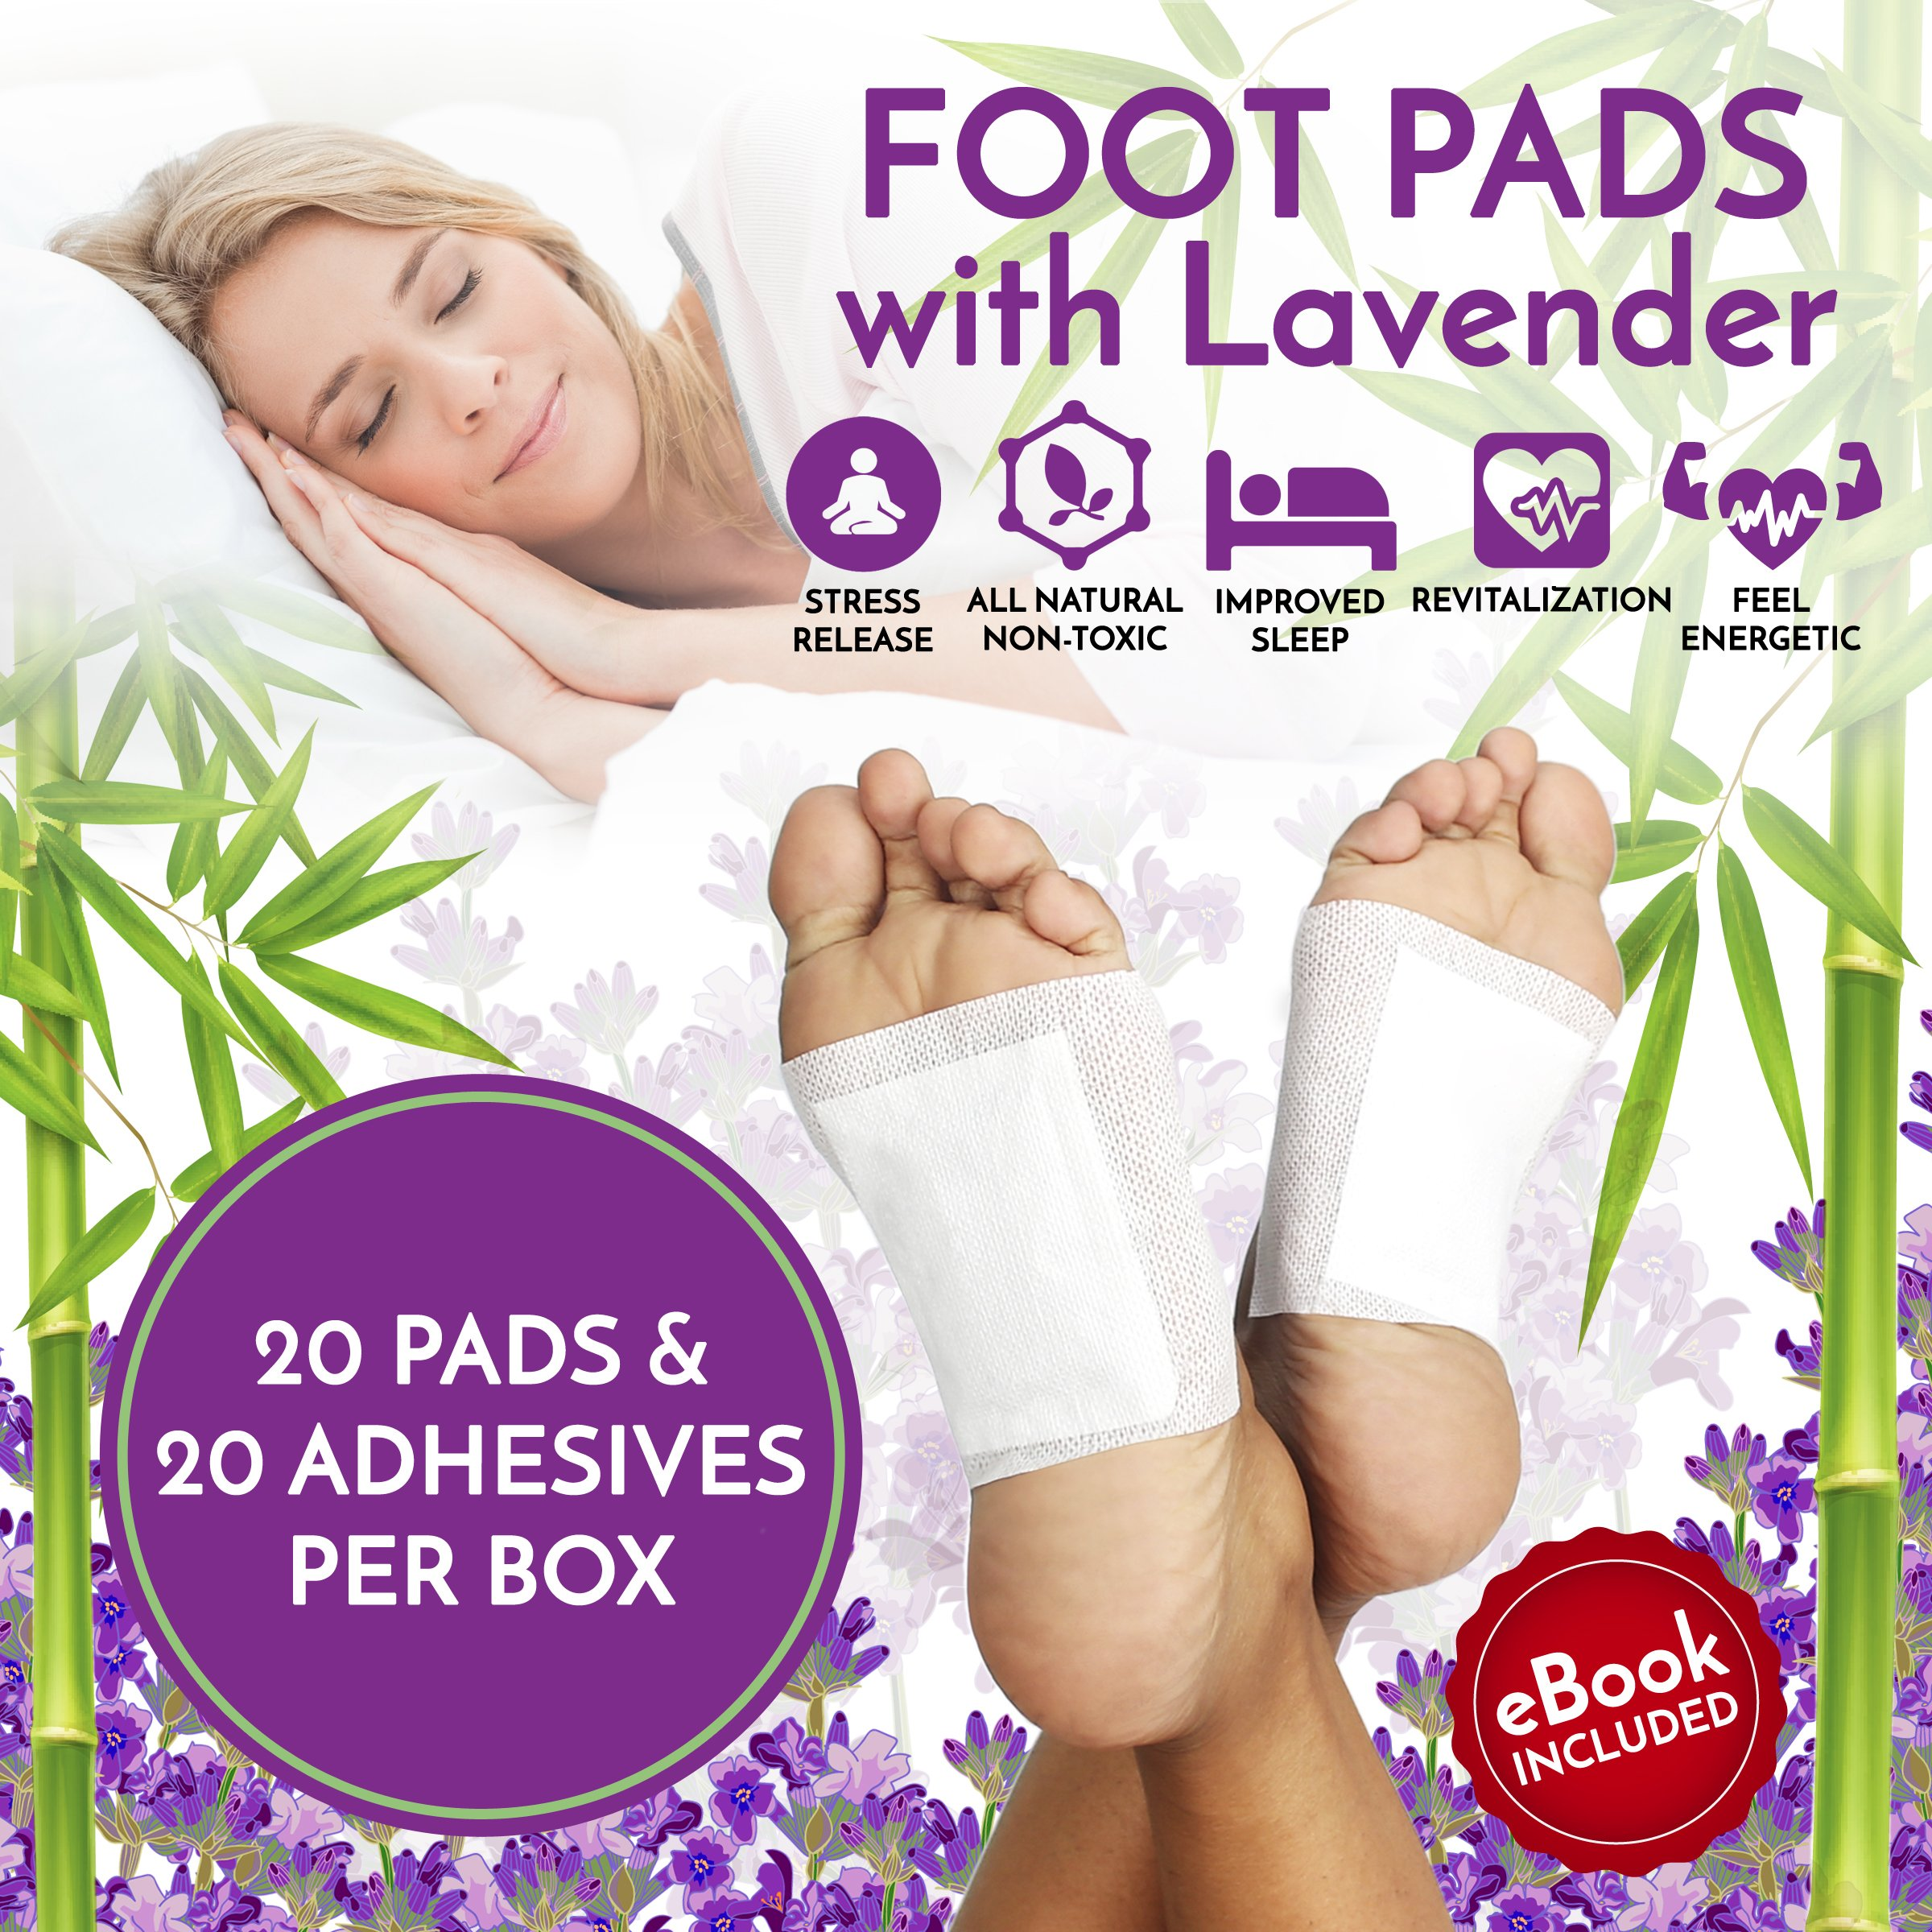 Foot Pads Patches For Pain Relief | Adhesive Foot Care Patch To Remove Impurities, Relieve Stress & Improve Sleep | Lavender Infused For a Relaxing & Calming Aroma - 20 Pack (UPGRADED FORMULA) by Paikō